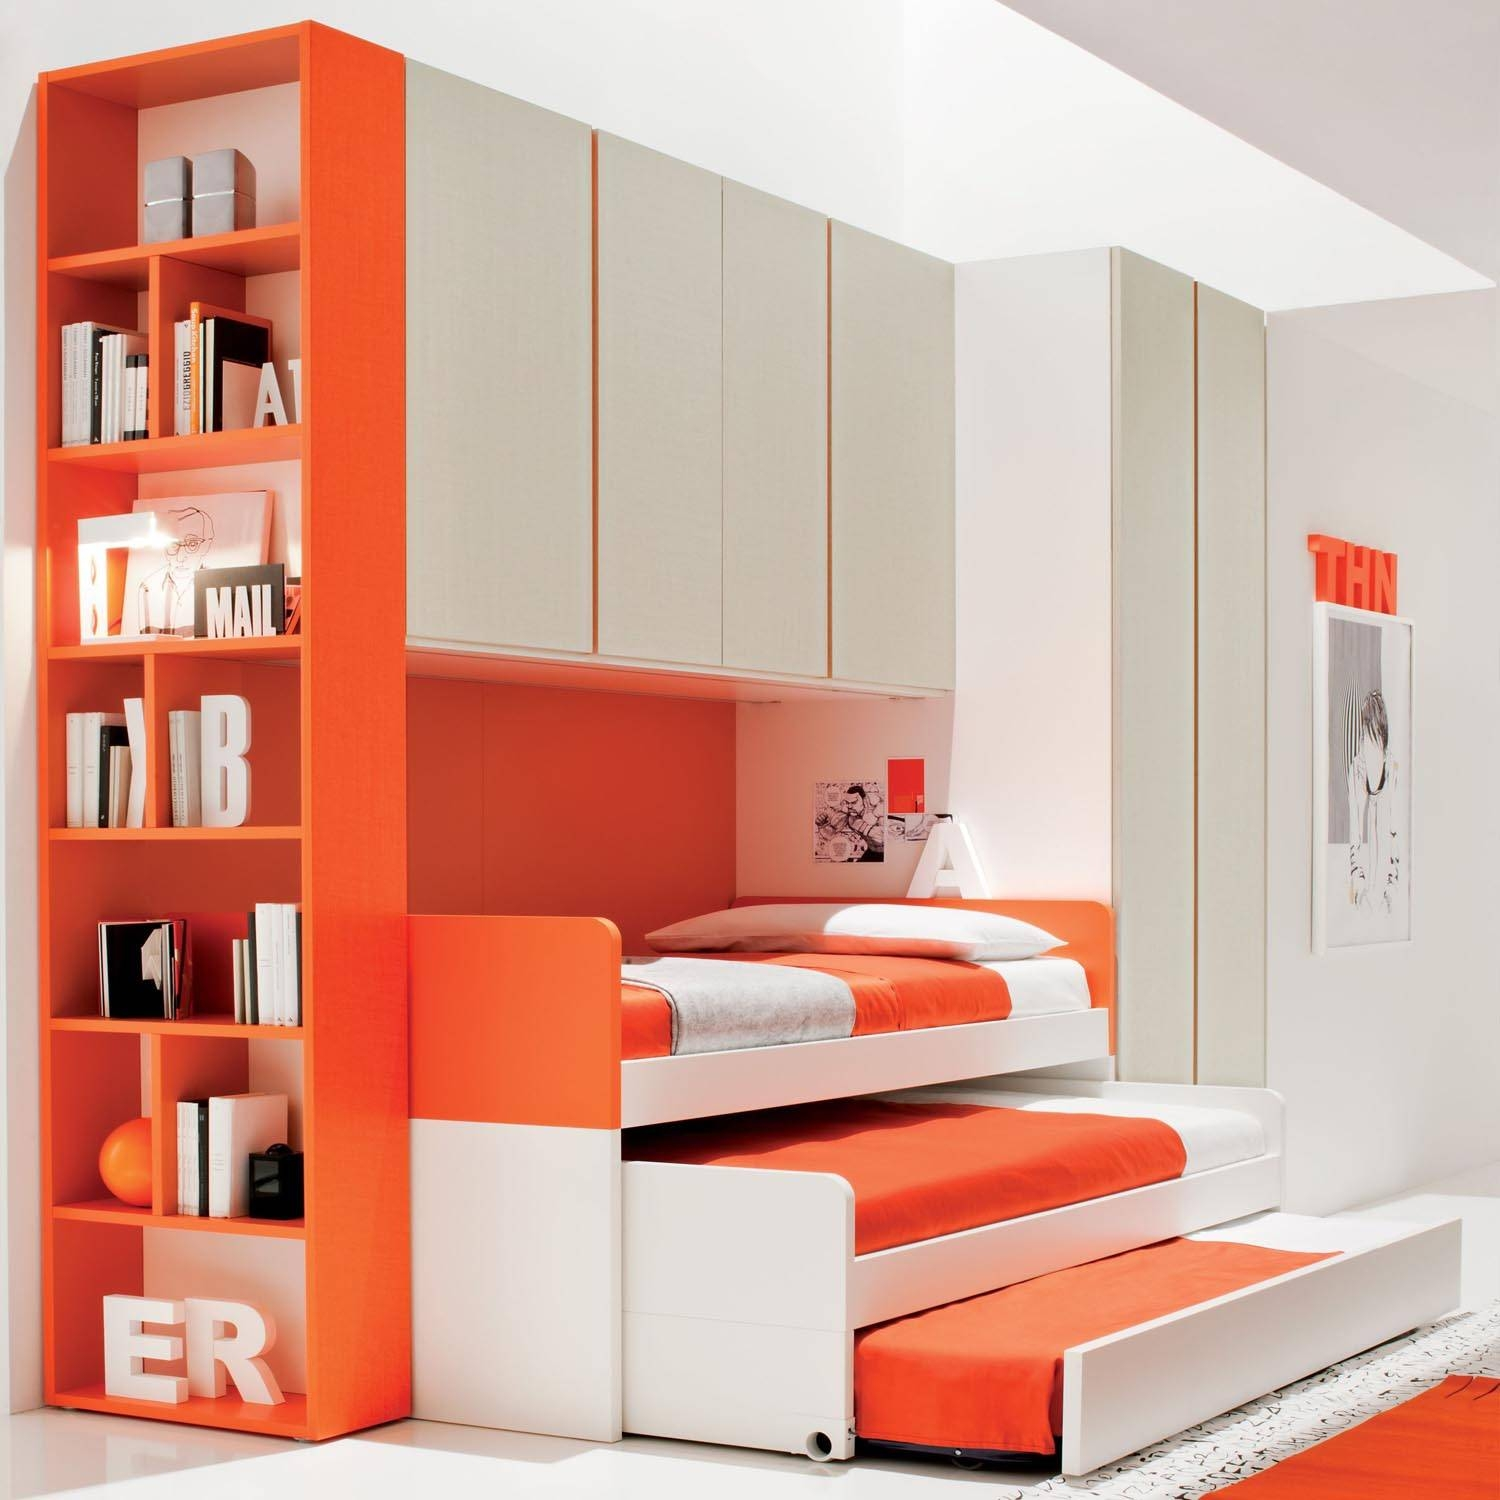 Charming Modern Bedroom Furniture For Kids With White Paint Walls pertaining to Childrens Wardrobes With Drawers and Shelves (Image 6 of 30)